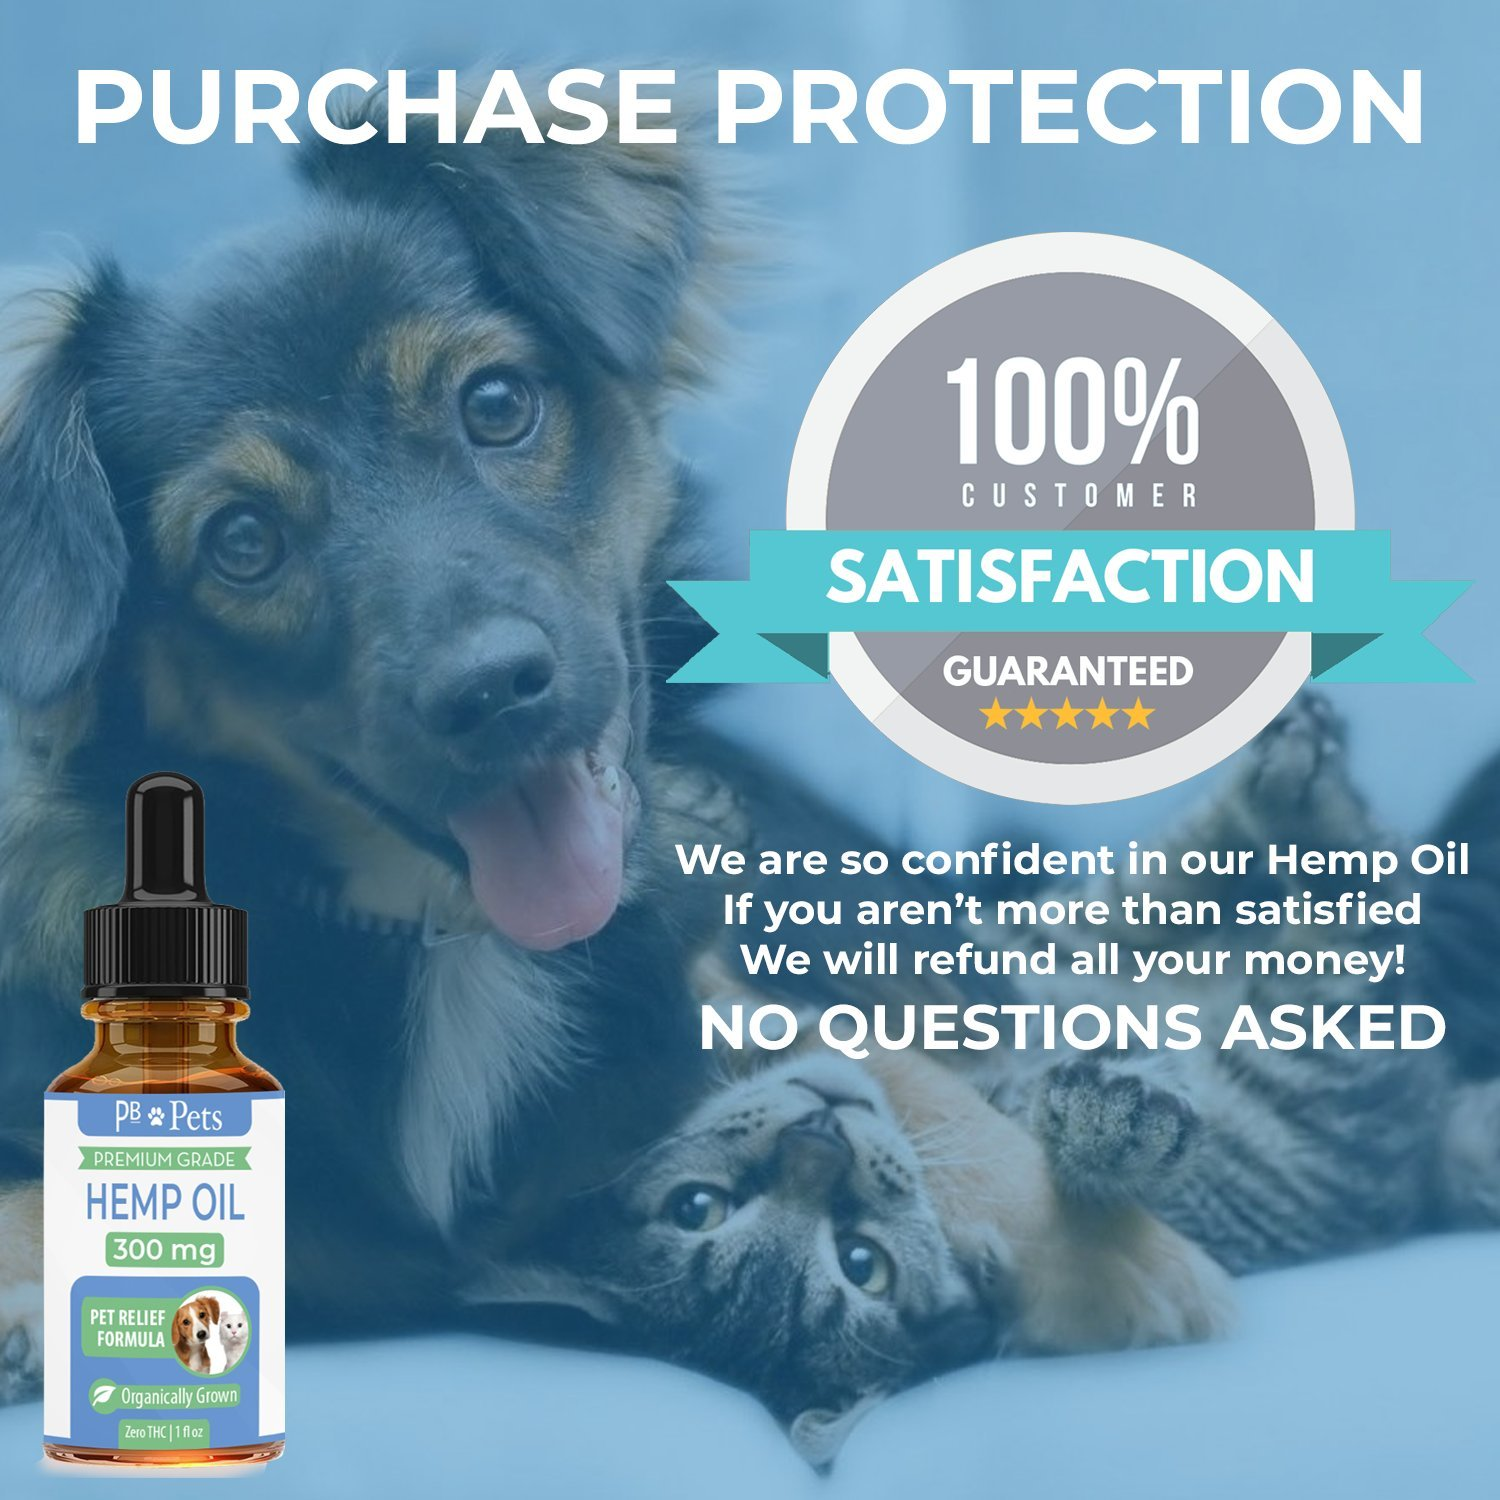 Full Spectrum Hemp Oil for Dogs and Cats (300mg) - Organically Grown & Made in USA - Pet Relief Formula Supports Hip & Joint Health, Natural Relief for Pain, Separation Anxiety